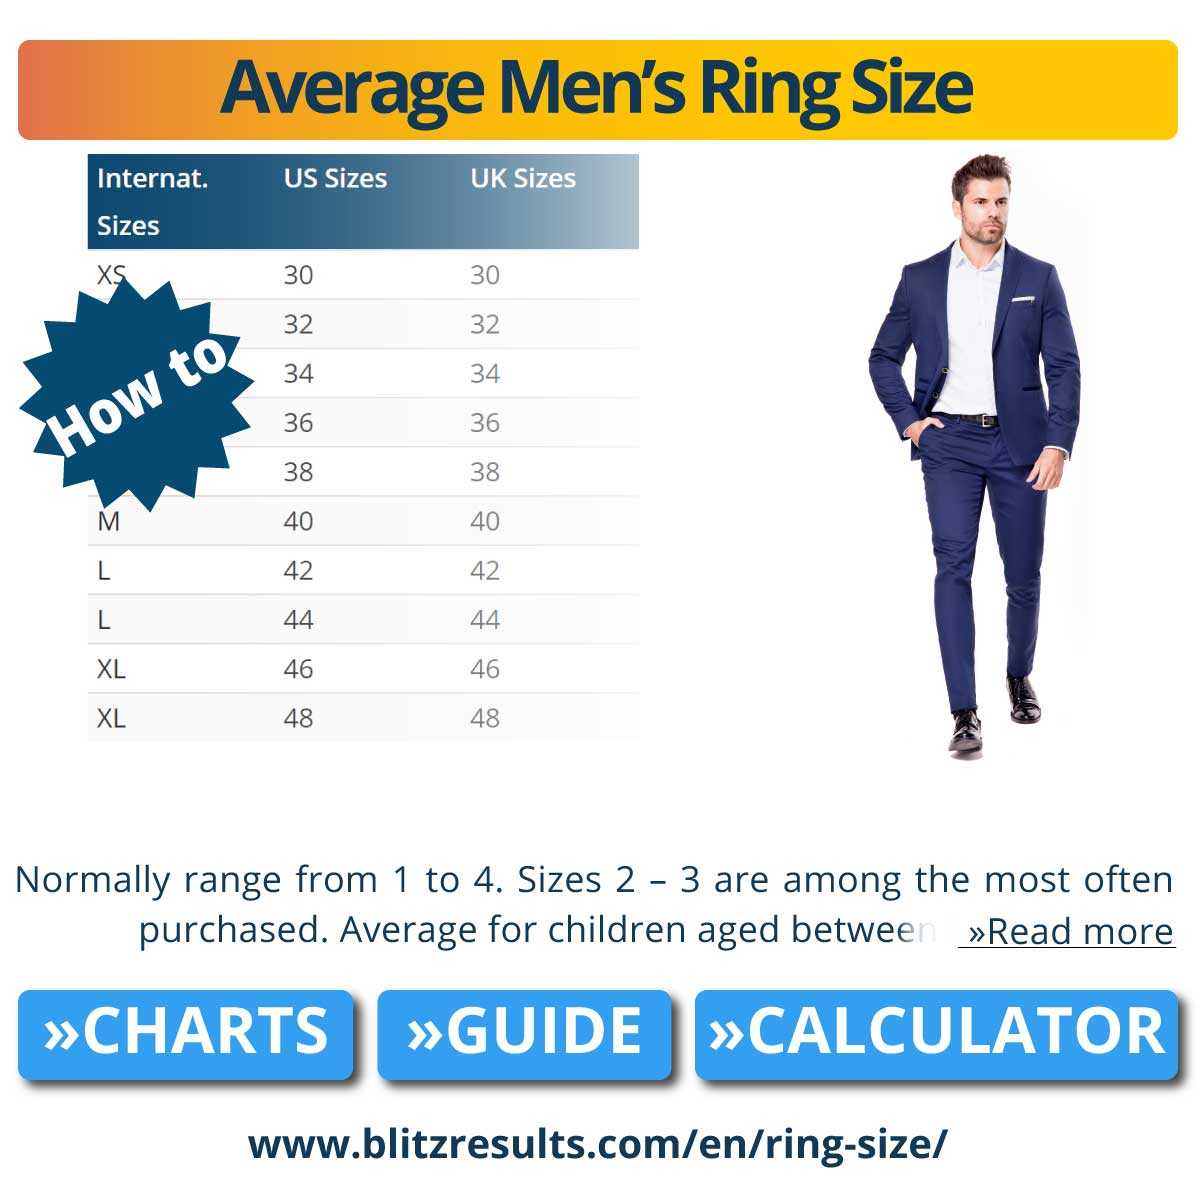 Average Men's Ring Size